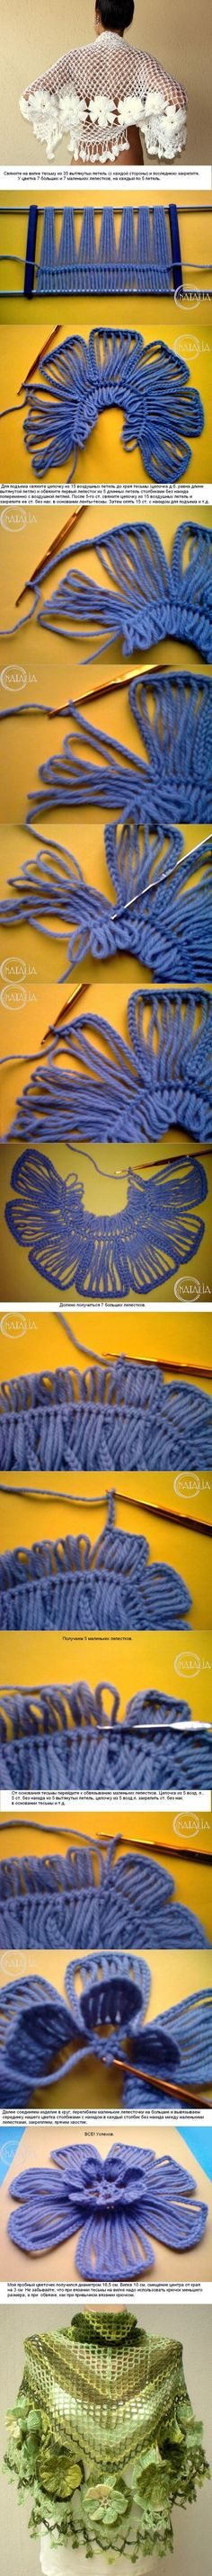 #Crochet #Flower #Tutorial - So beautiful! This type of flower makes a big splash and takes less time to do than you might imagine :>)